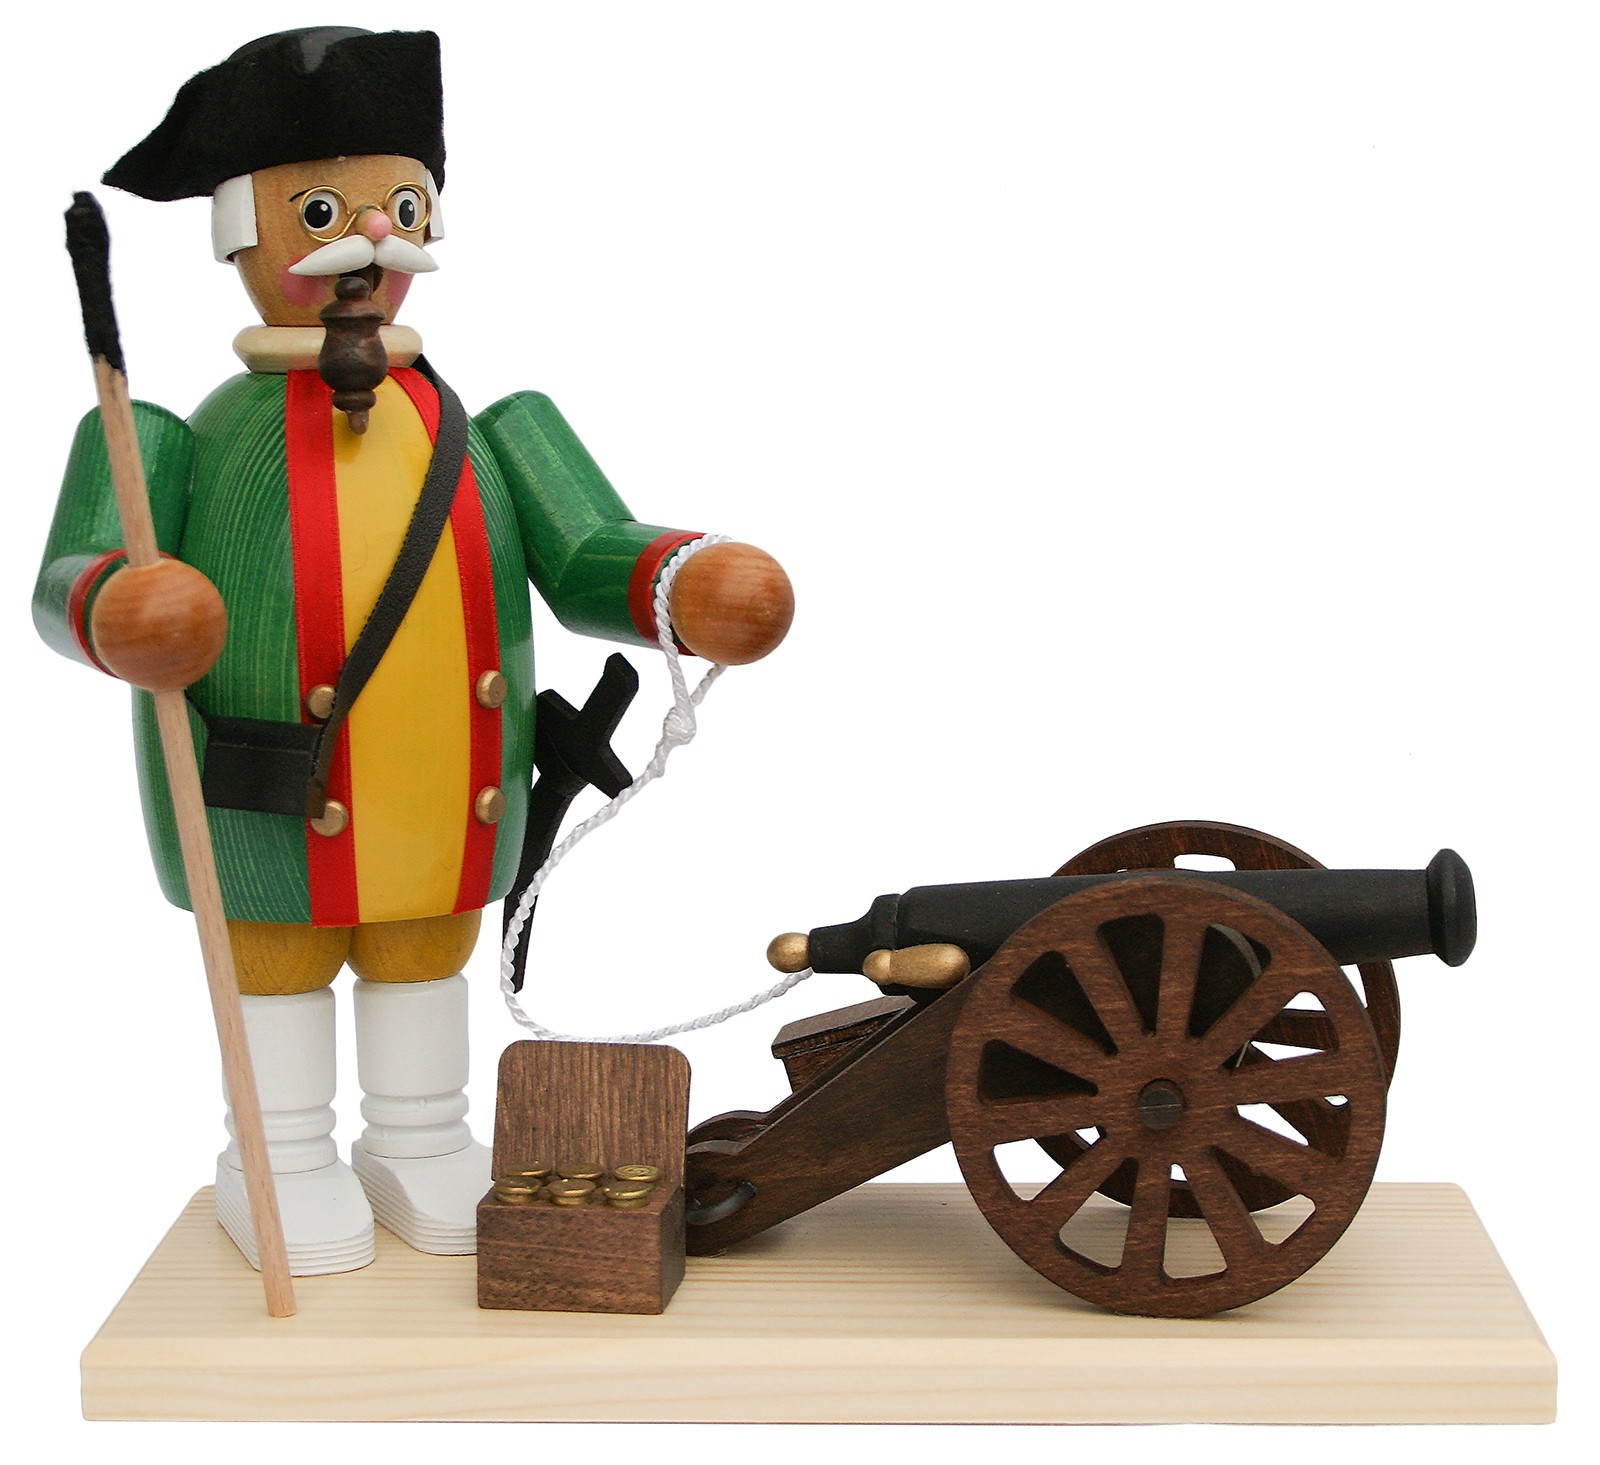 incense smoker, cannoneer with cannon